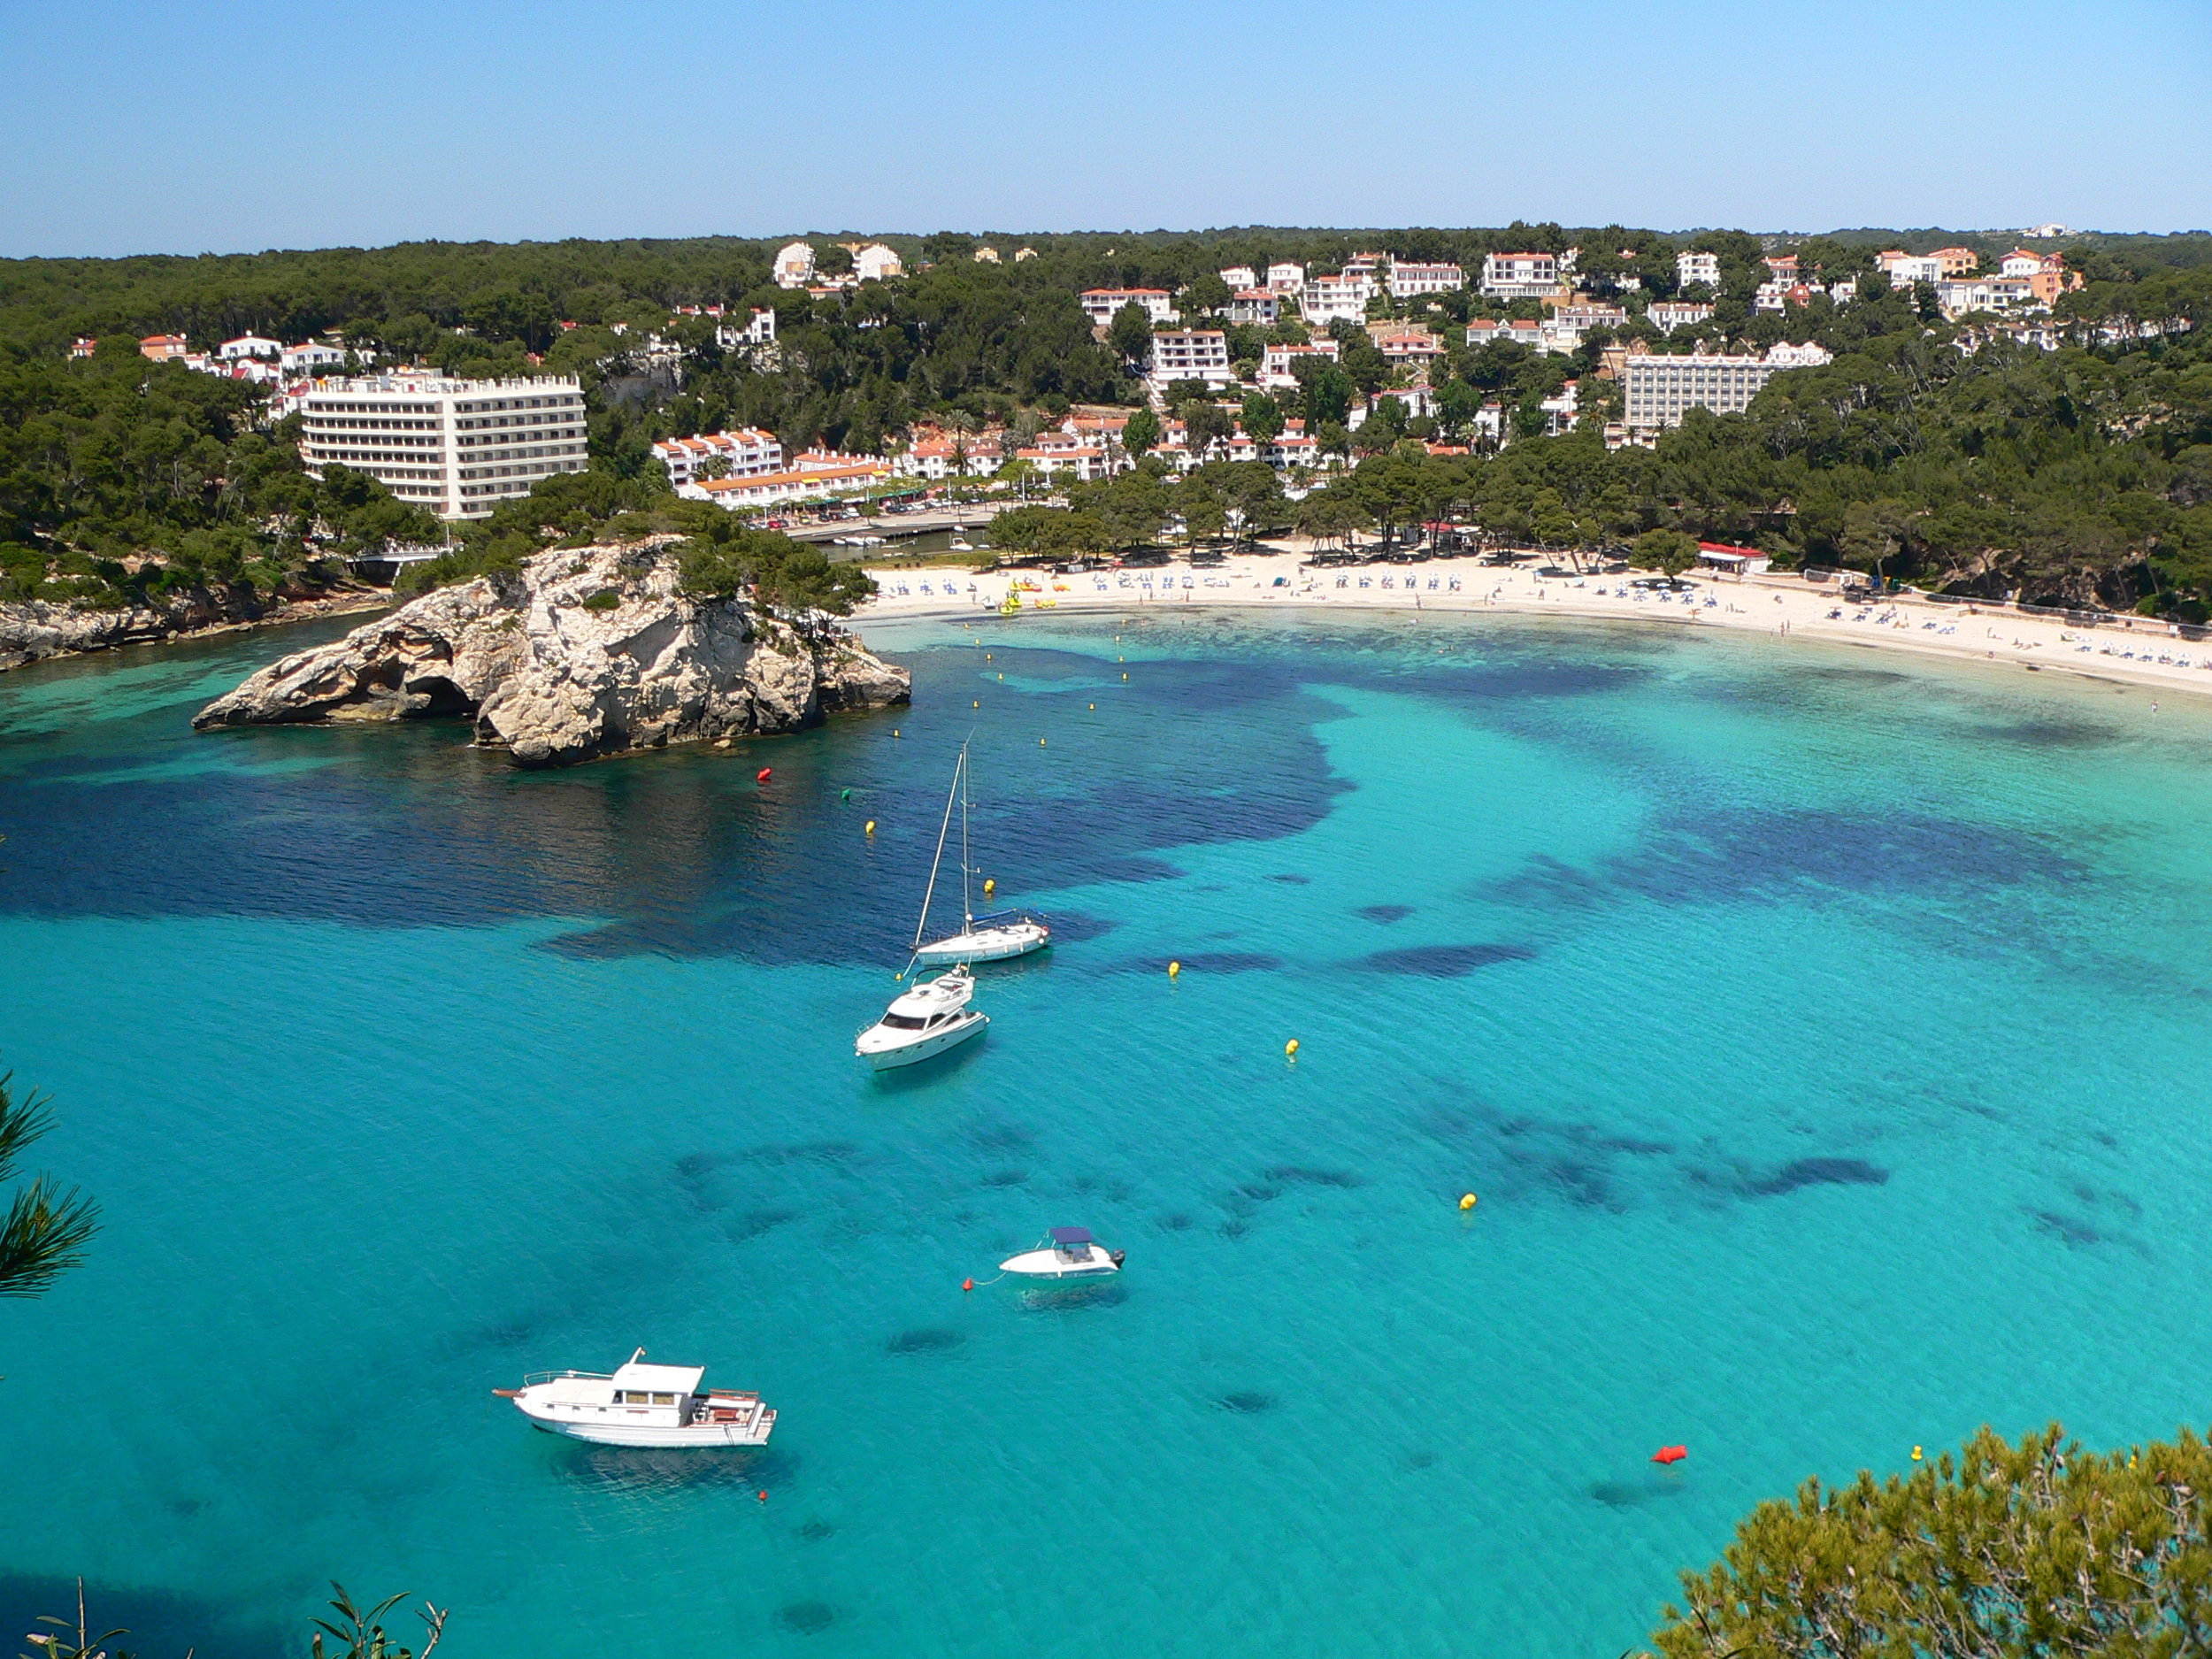 Free Menorca property search service. - Enquire directly thorugh the contact form & receive property options by email!